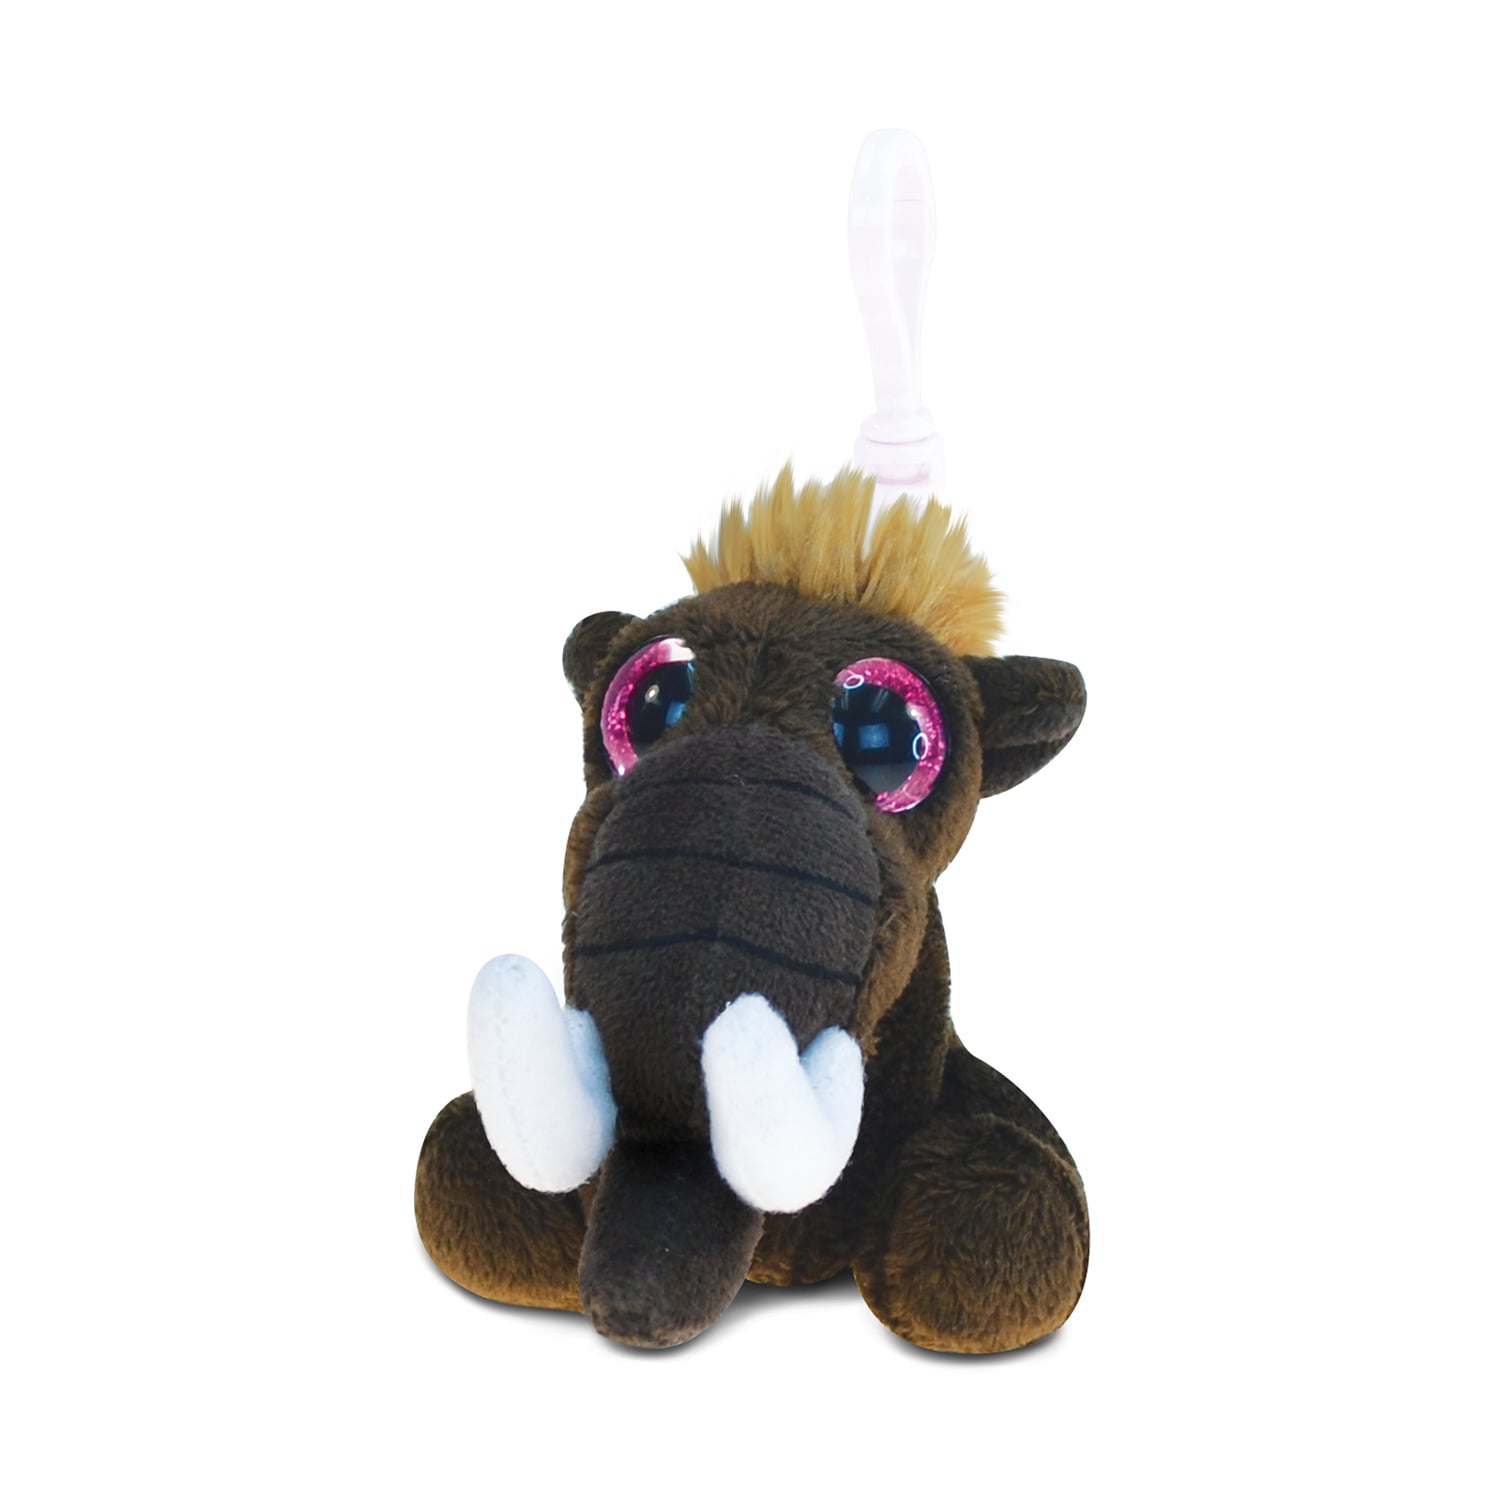 Puzzled Big-eye Mammoth Polyester 5.5-inch Plush Backpack...